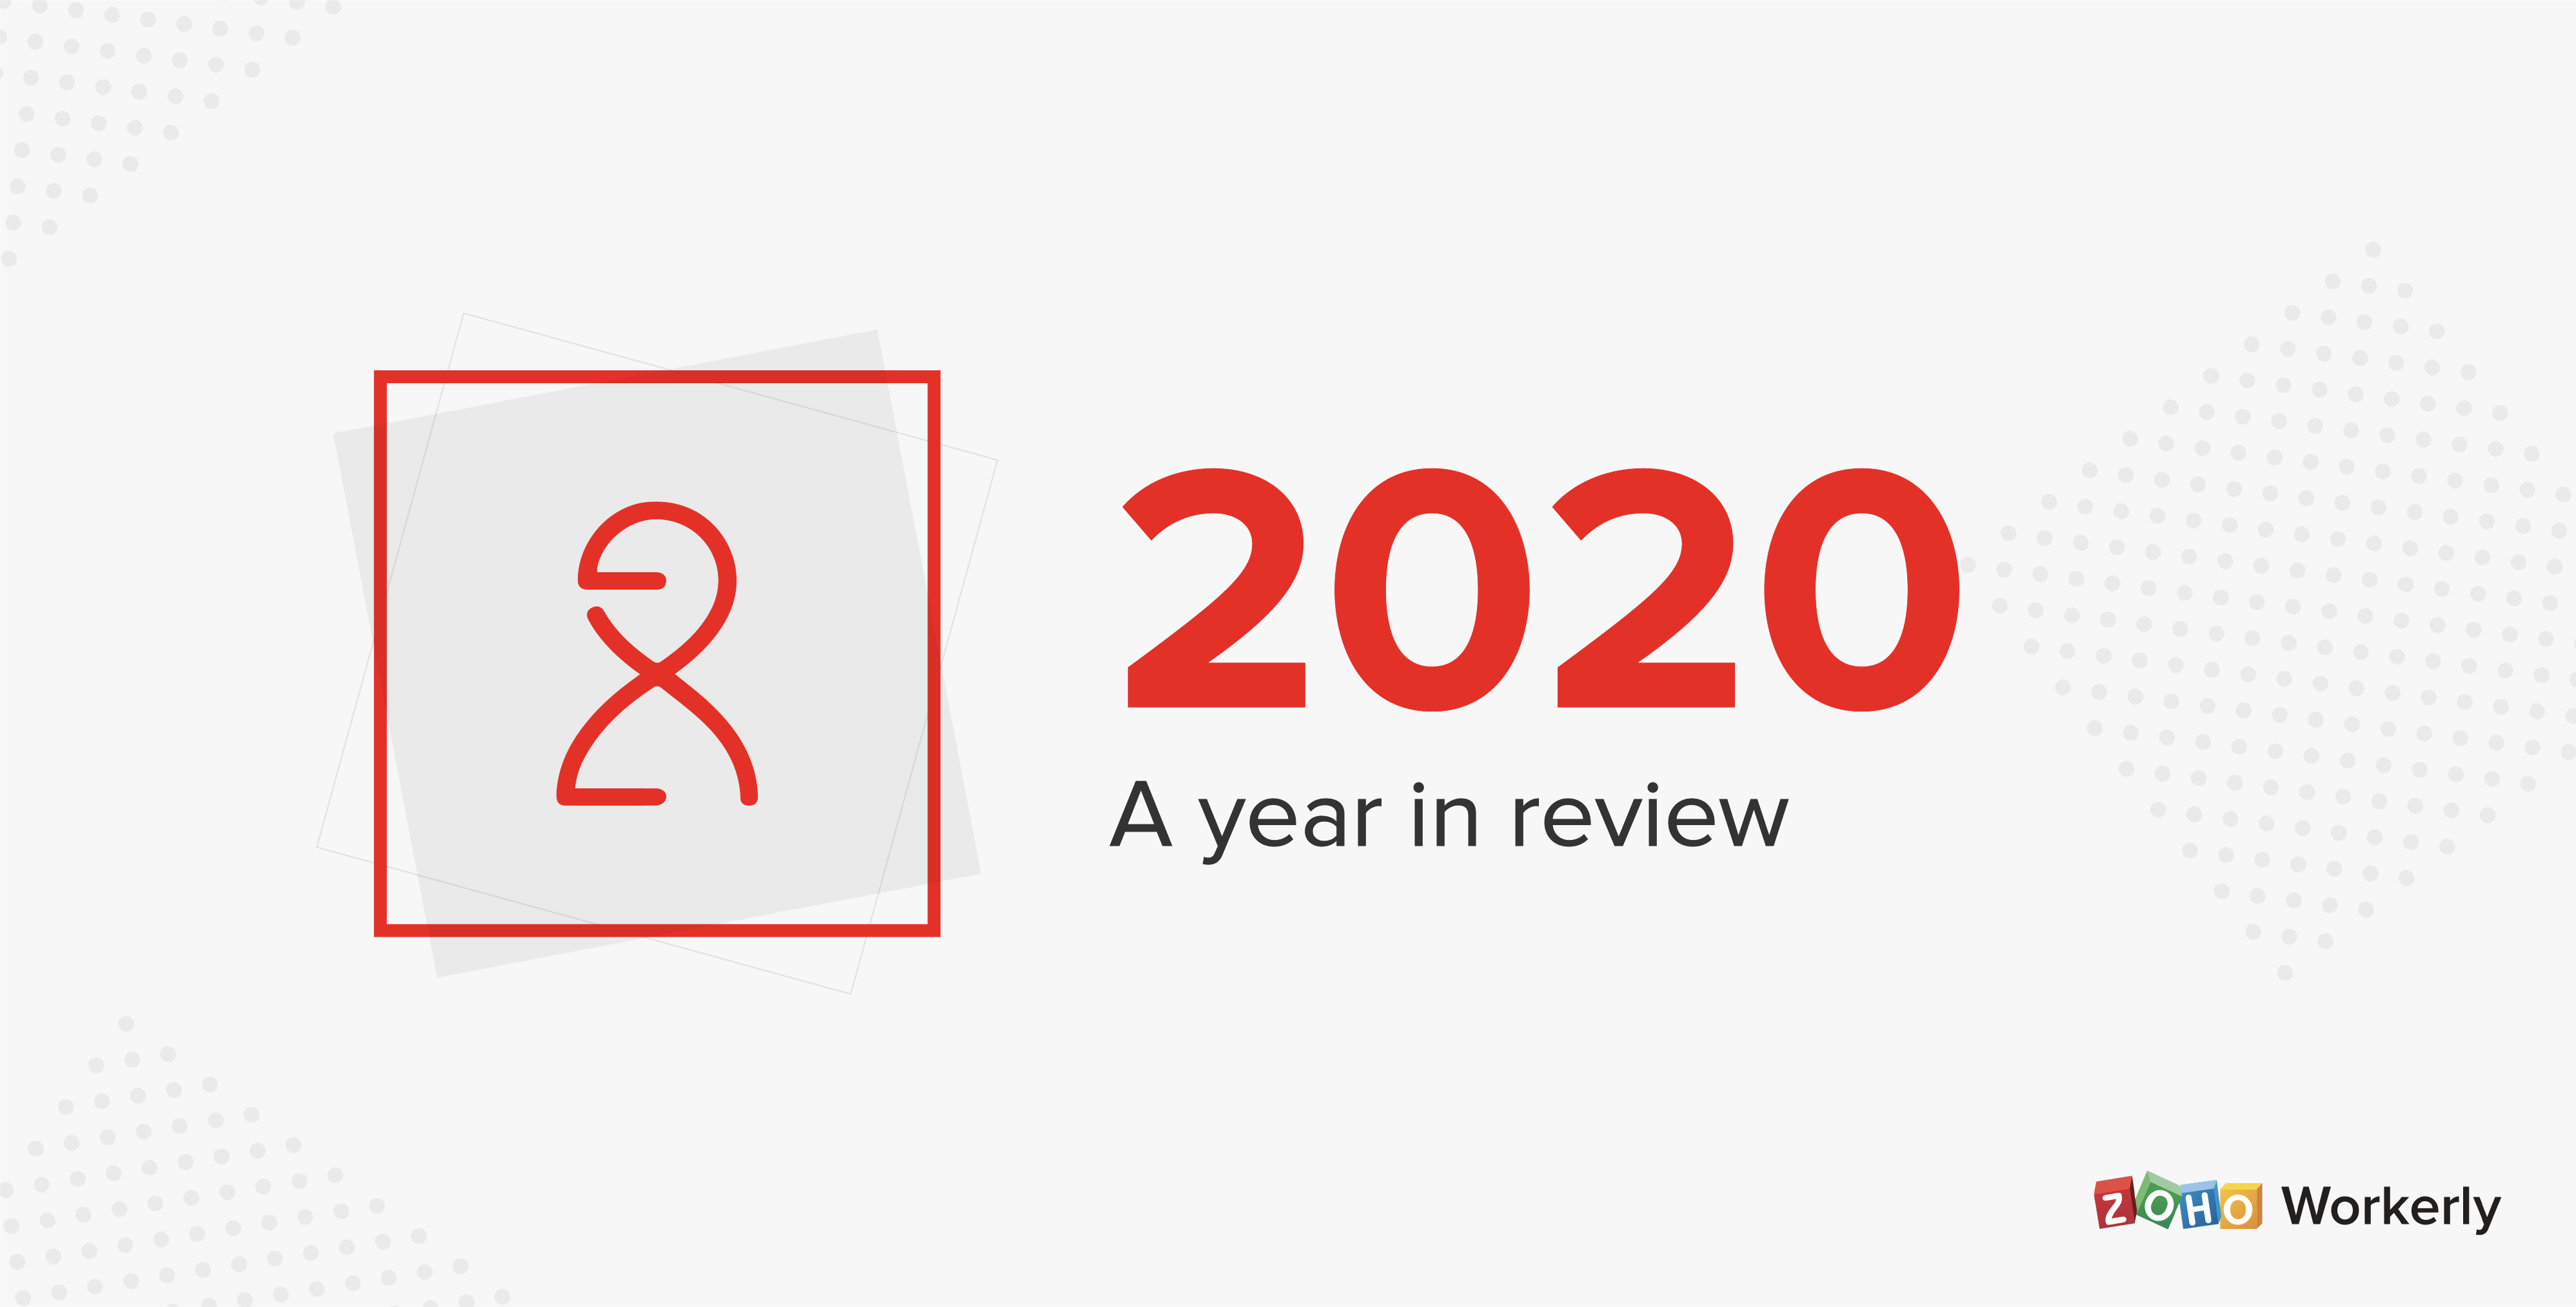 Zoho Workerly in 2020: A year in review